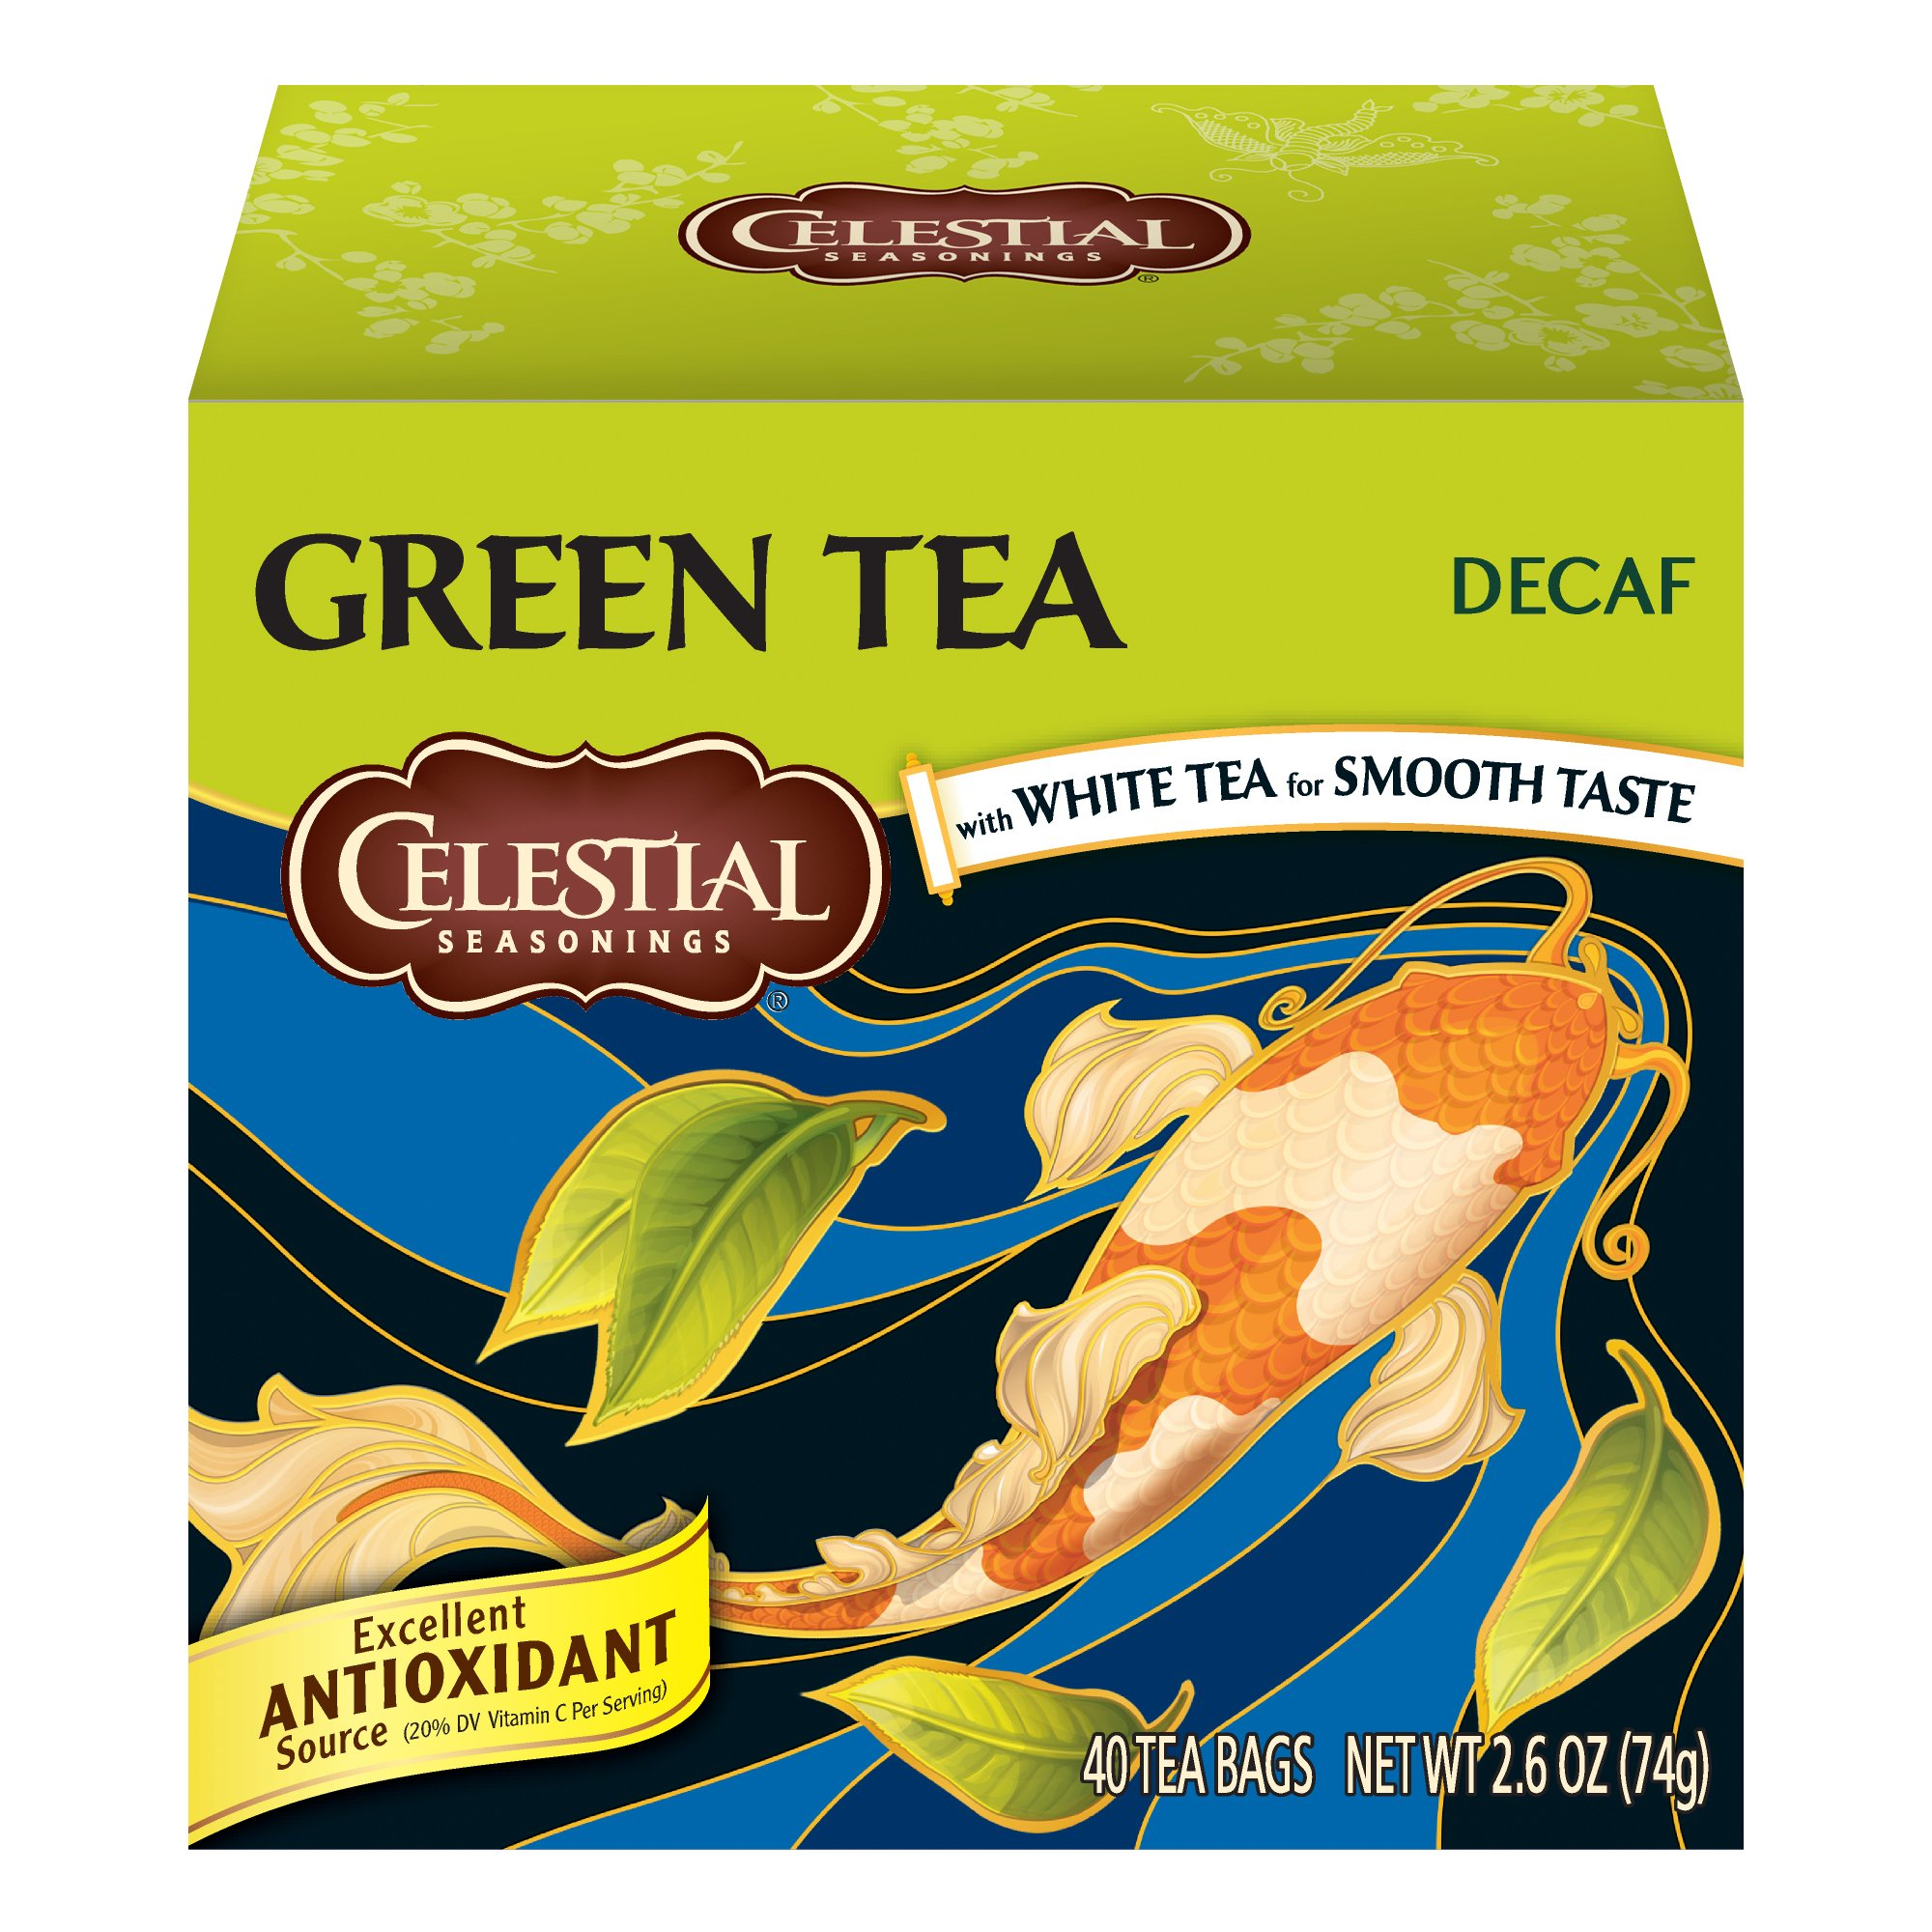 Celestial Seasonings Green Tea, Decaf, 40 Count (Pack of 6) by Celestial Seasonings